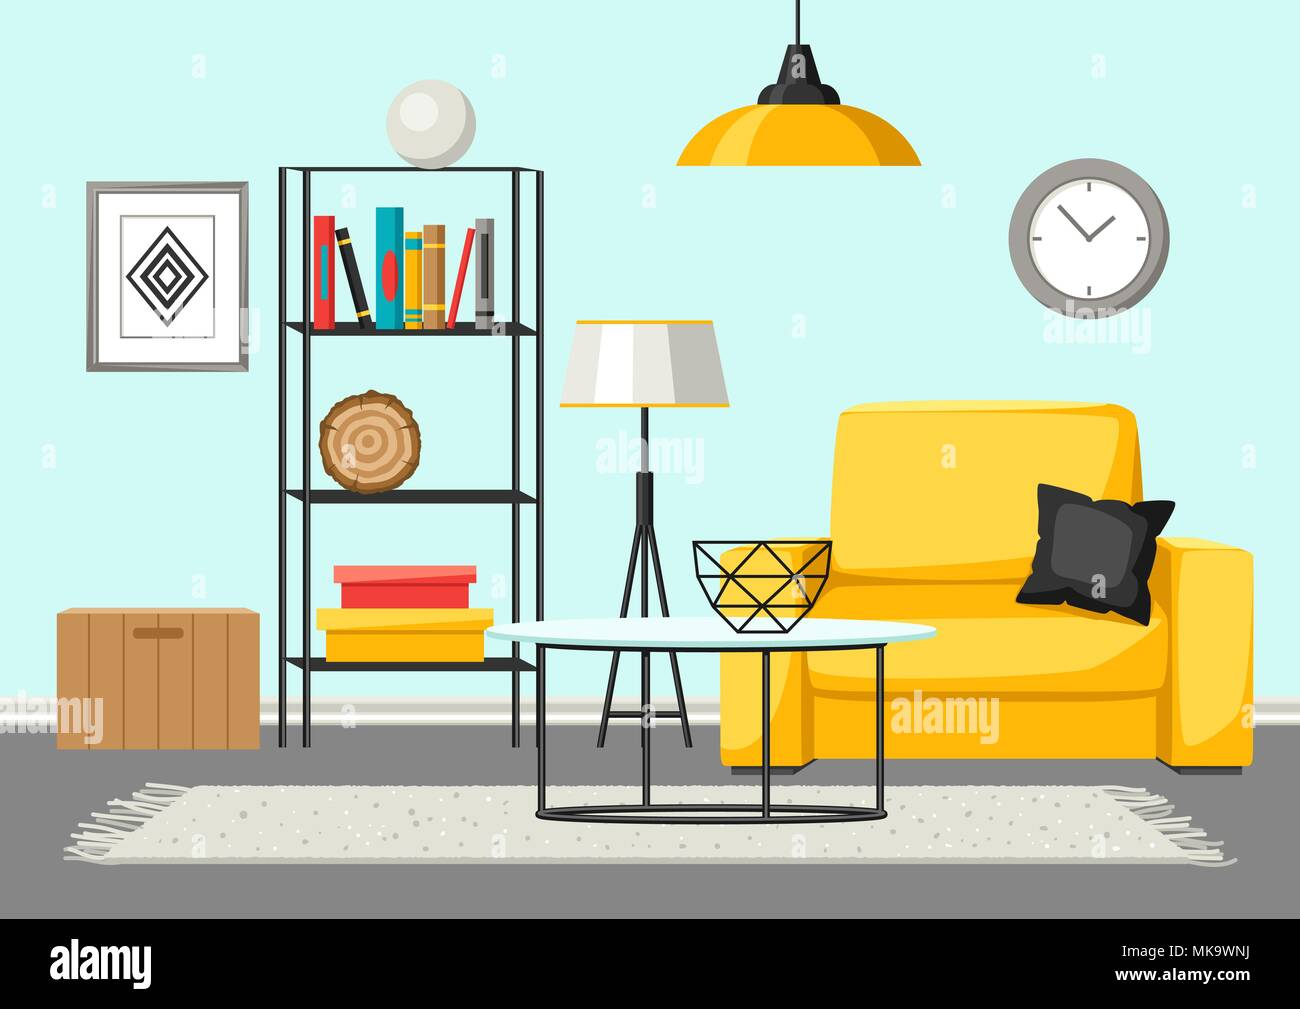 Interior Living Room Furniture And Home Decor Stock Vector Art